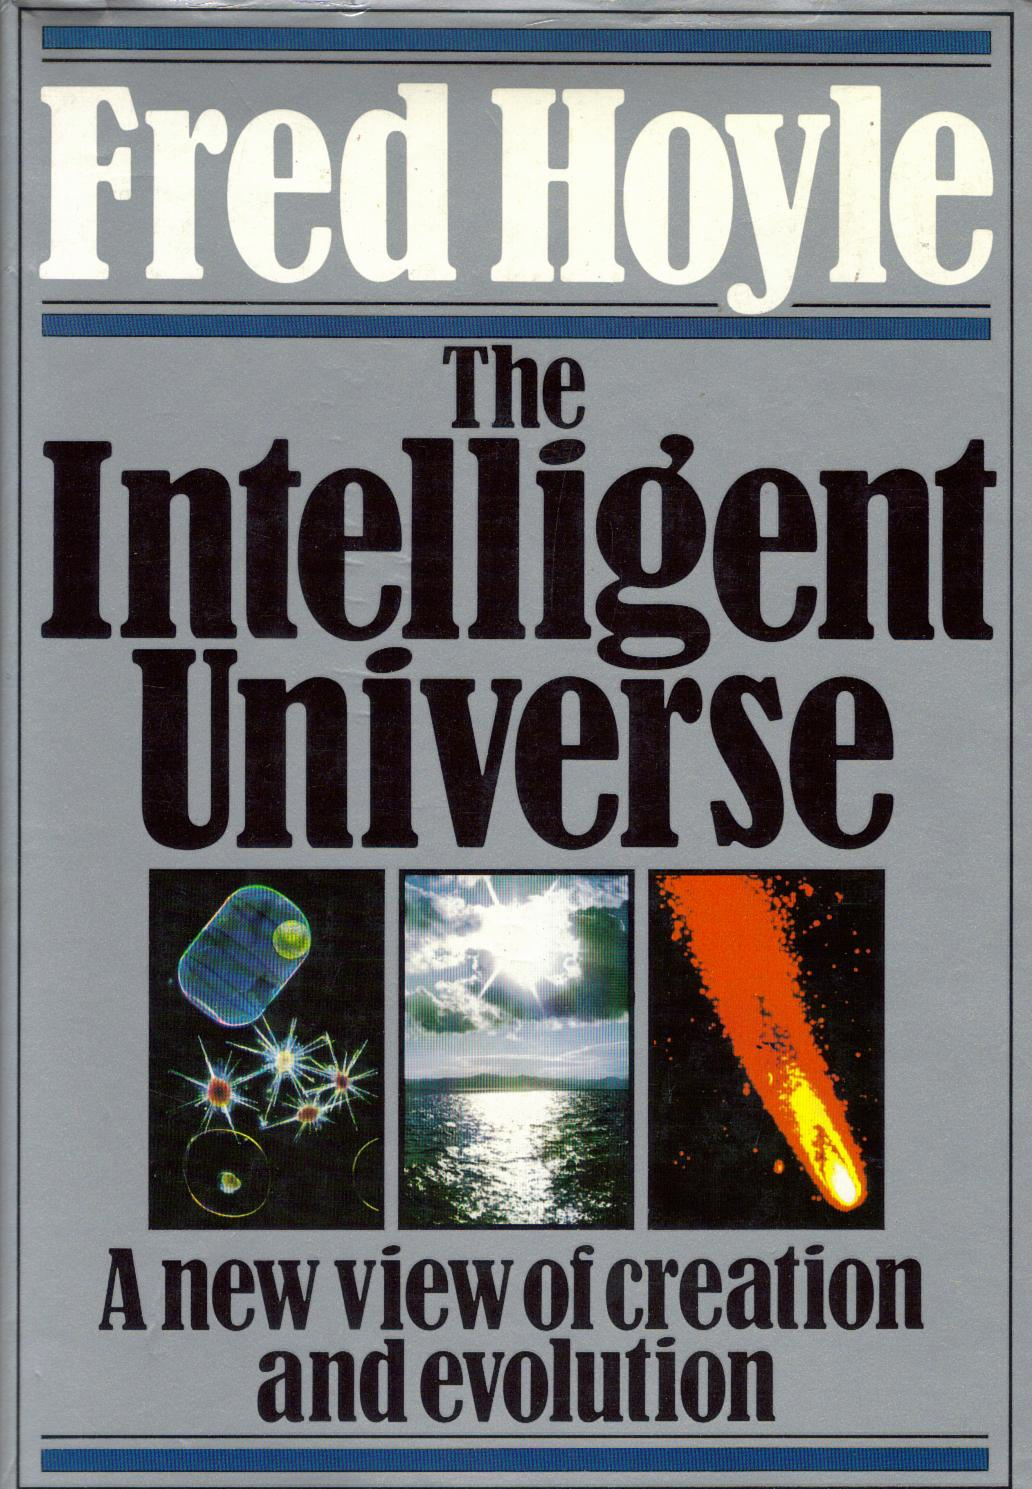 Peer-Reviewed Articles Supporting Intelligent Design